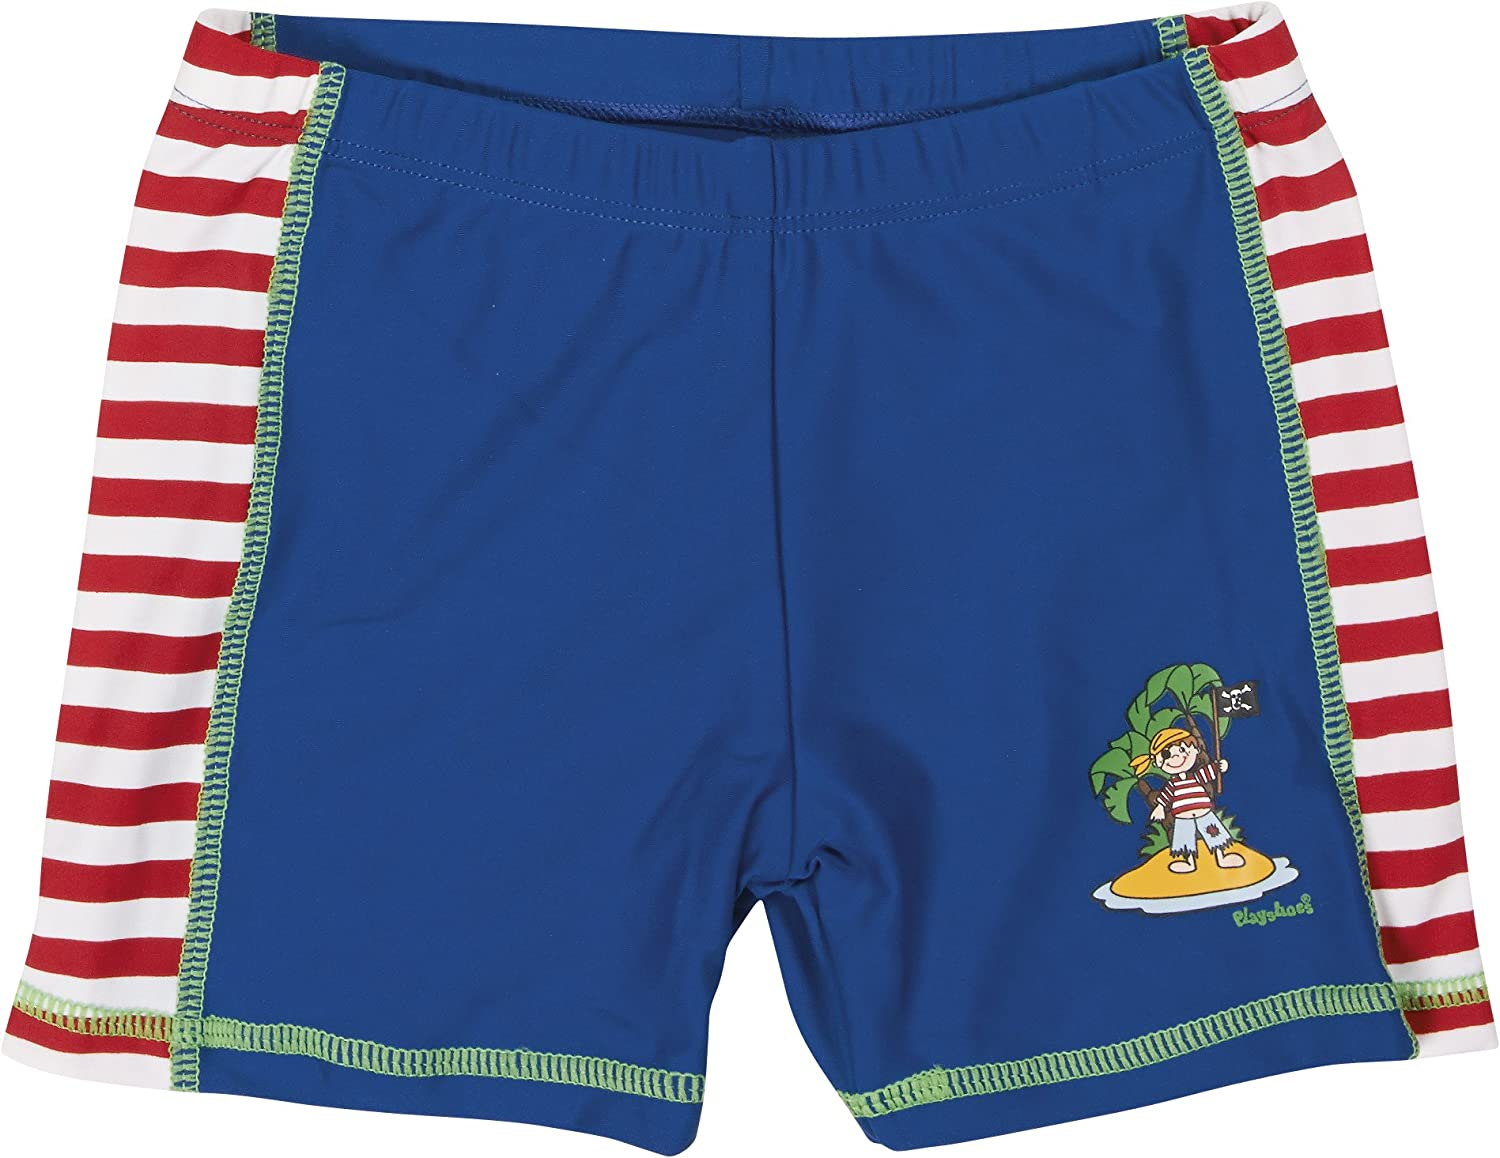 Playshoes Pirate Collection Boys Swim Shorts Trunks